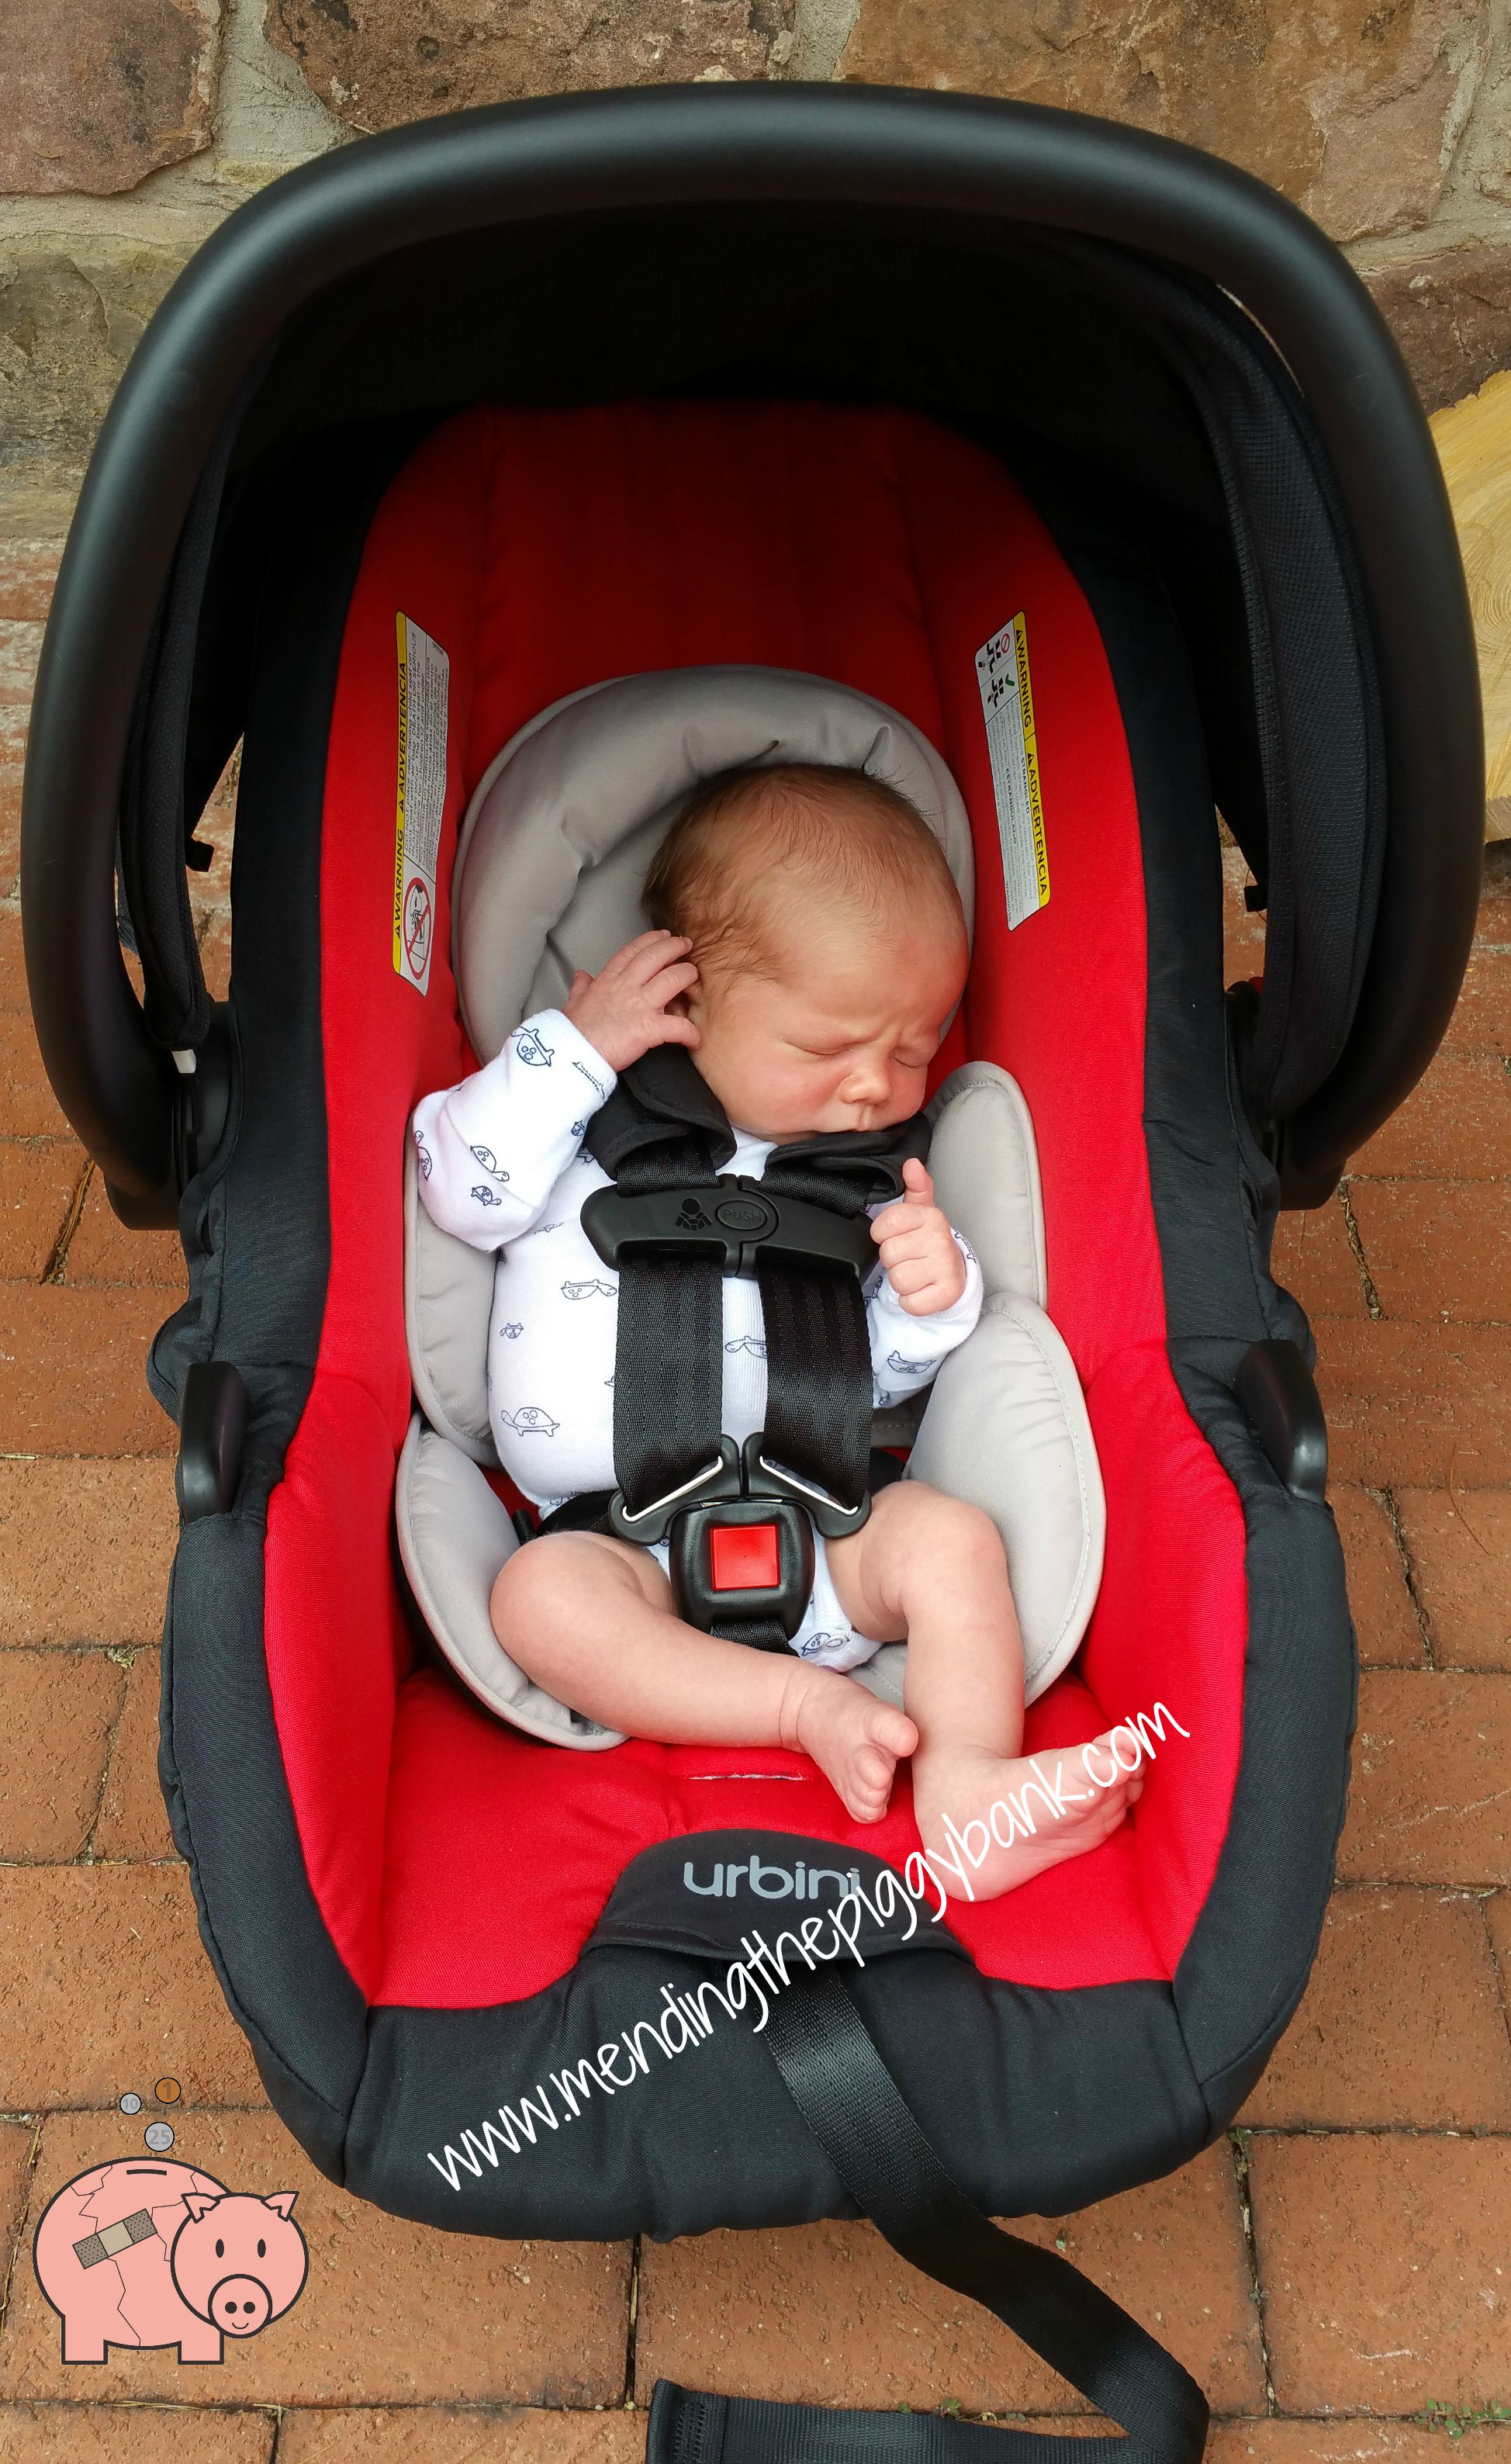 Urbini Sonti Infant Car Seat Review Written By Sarah